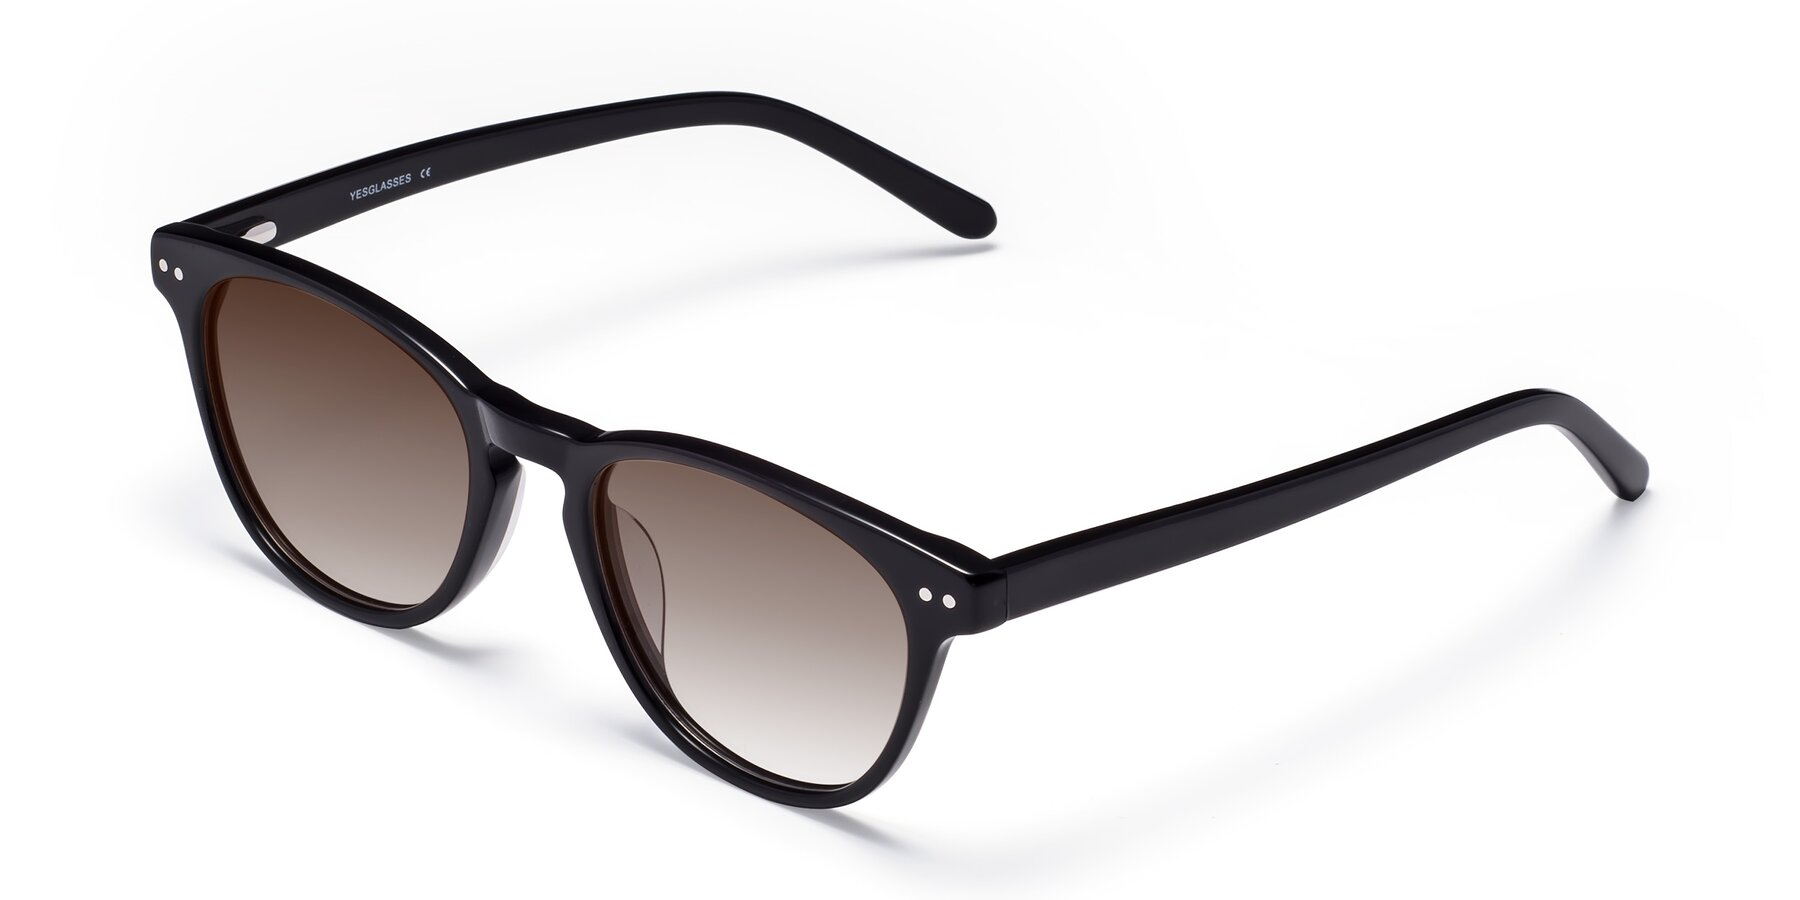 Angle of Blaze in Black with Brown Gradient Lenses